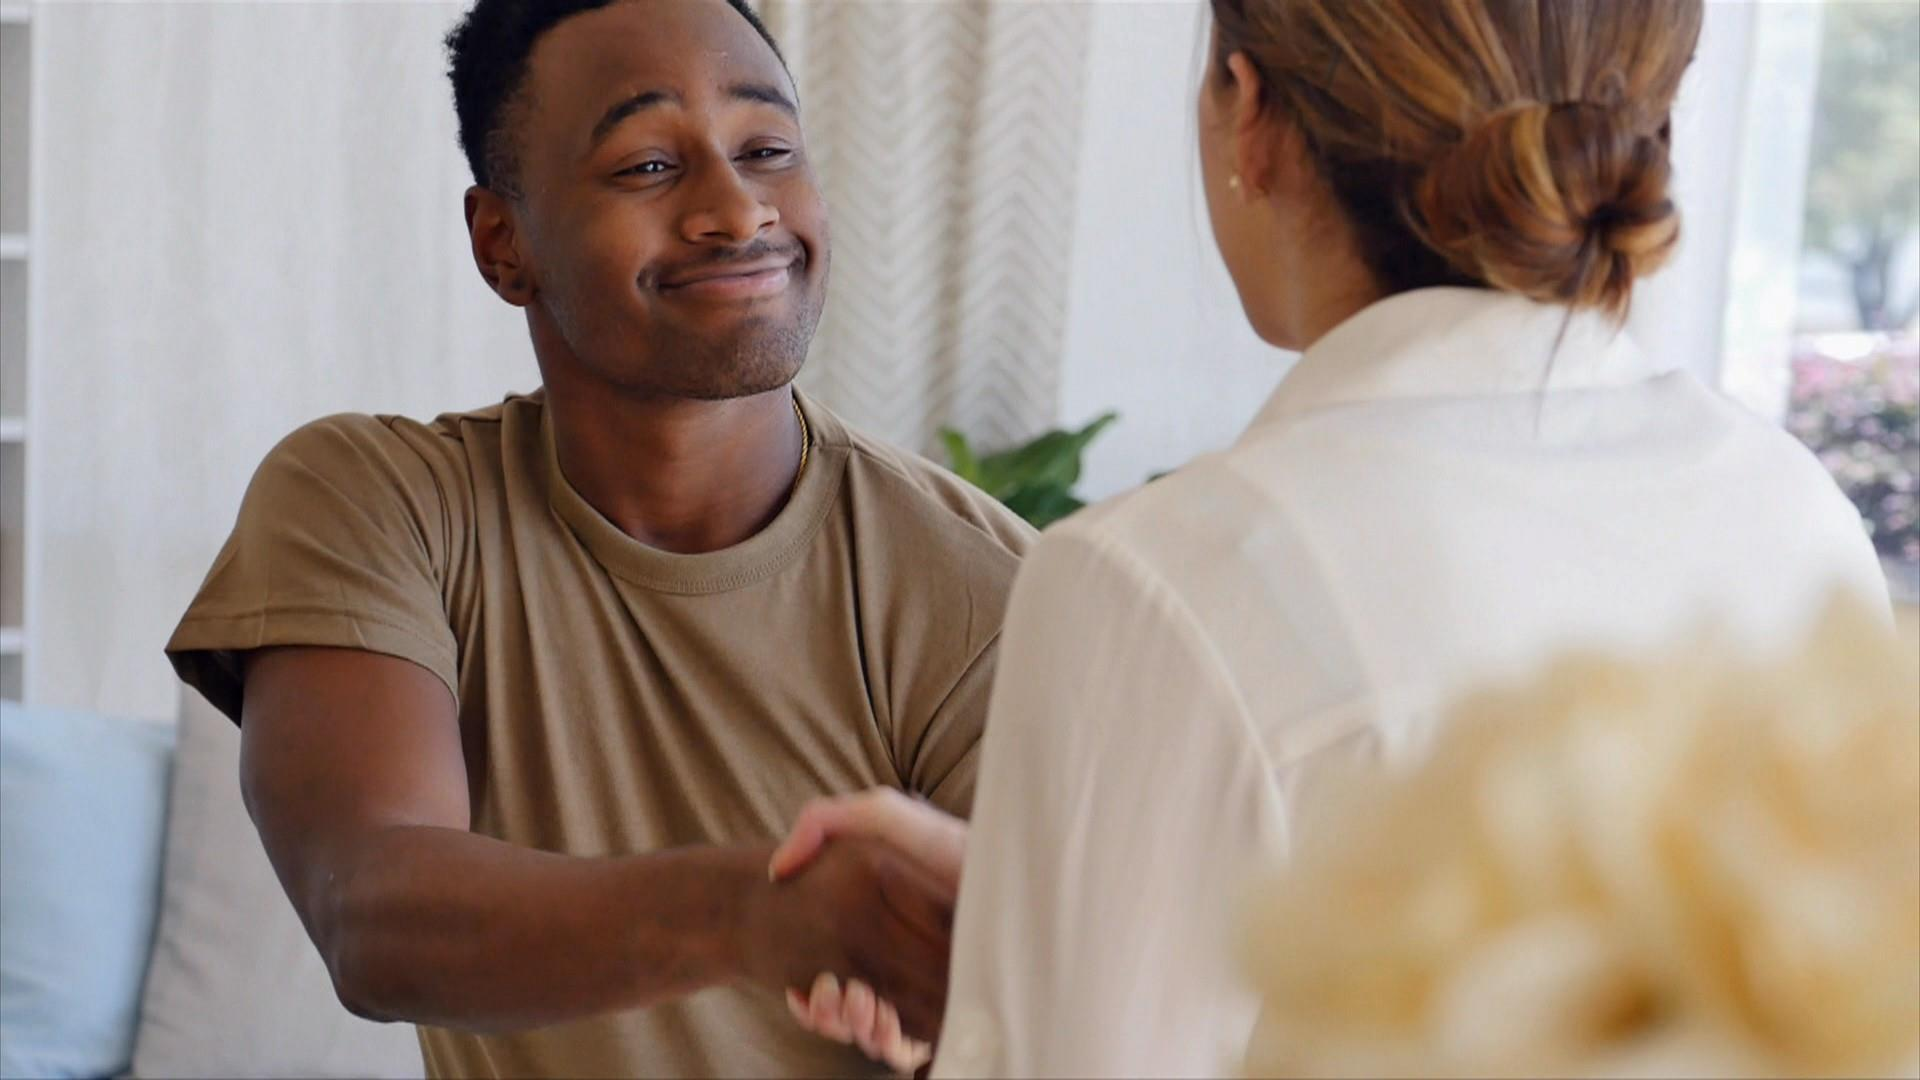 Behind the science of making a first impression